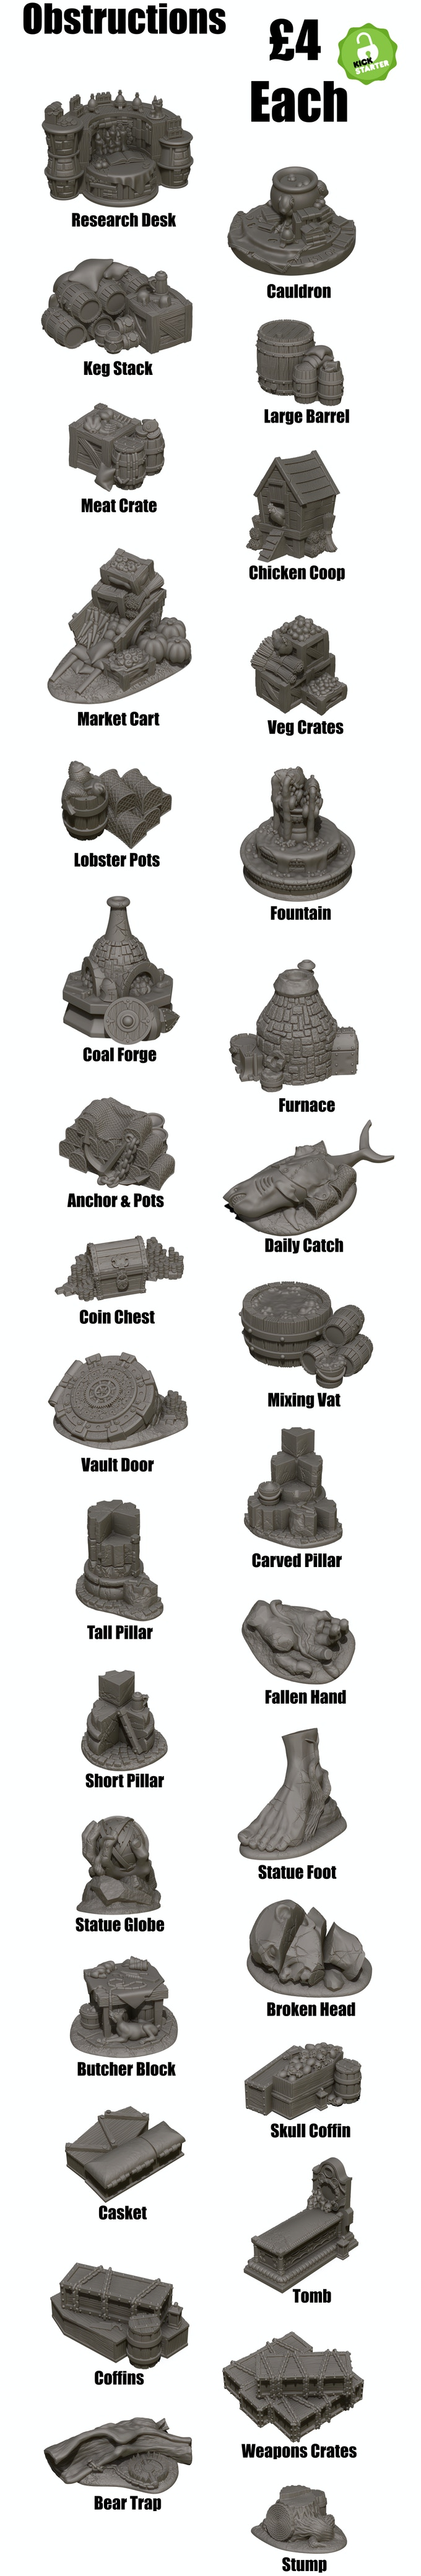 Obstruction terrain pieces for in game play